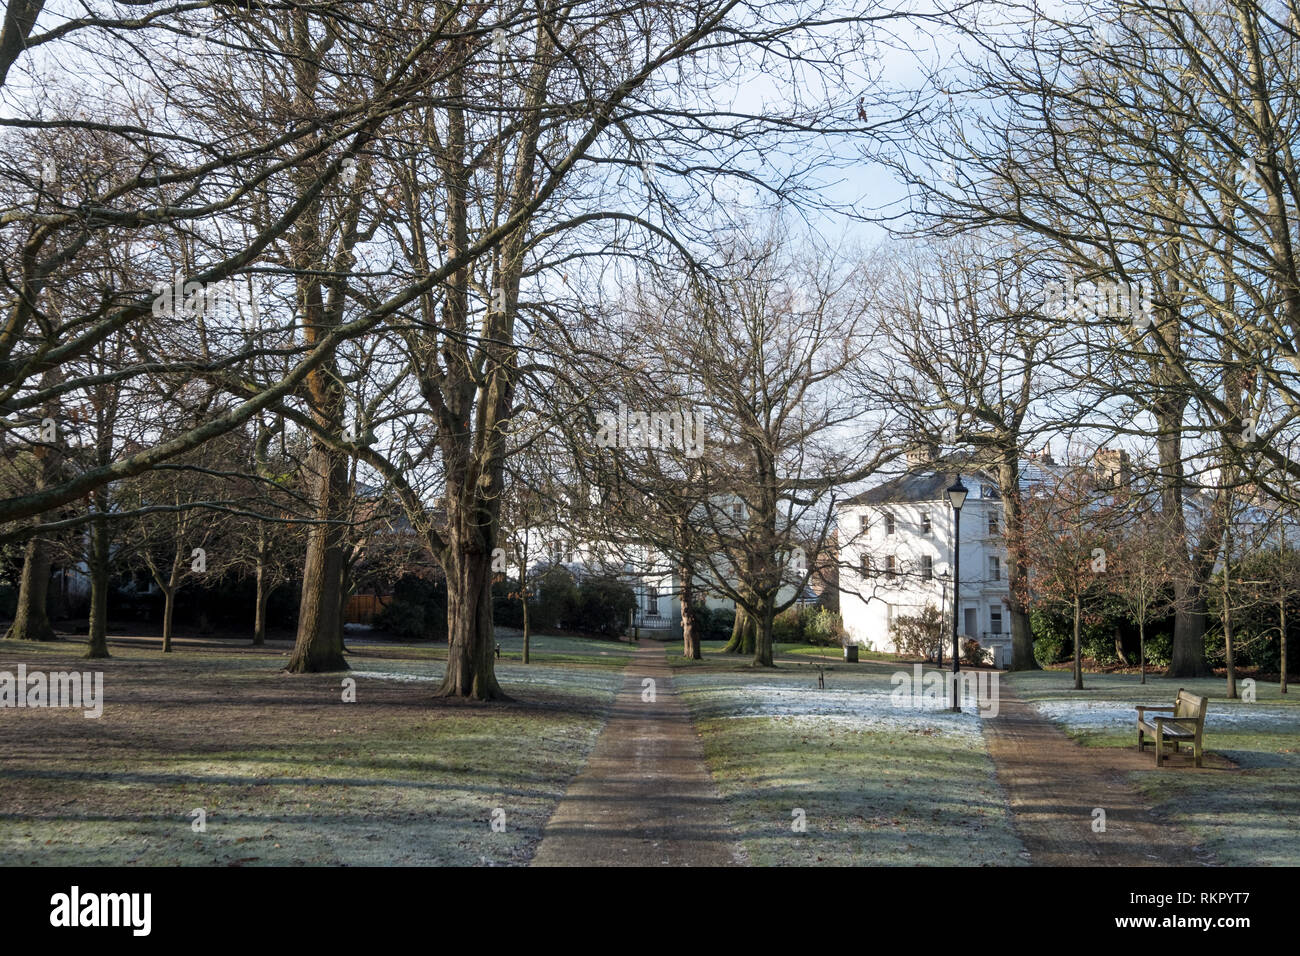 The Grove, Royal Tunbridge Wells, Kent UK. Photographed on an icy winter's day when there was frost on the ground. - Stock Image